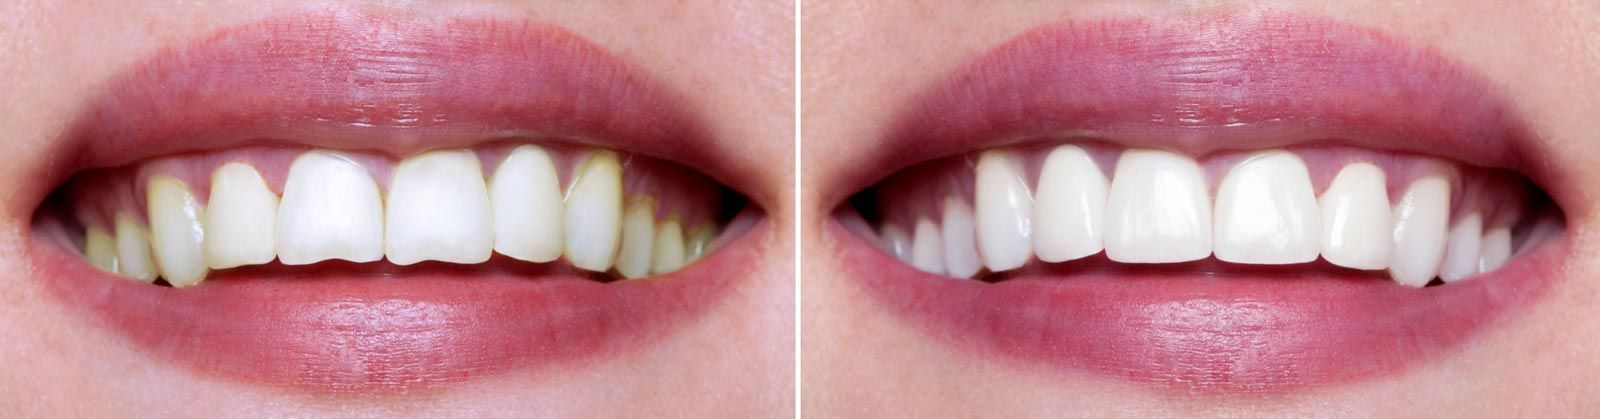 Before and after tooth recontouring